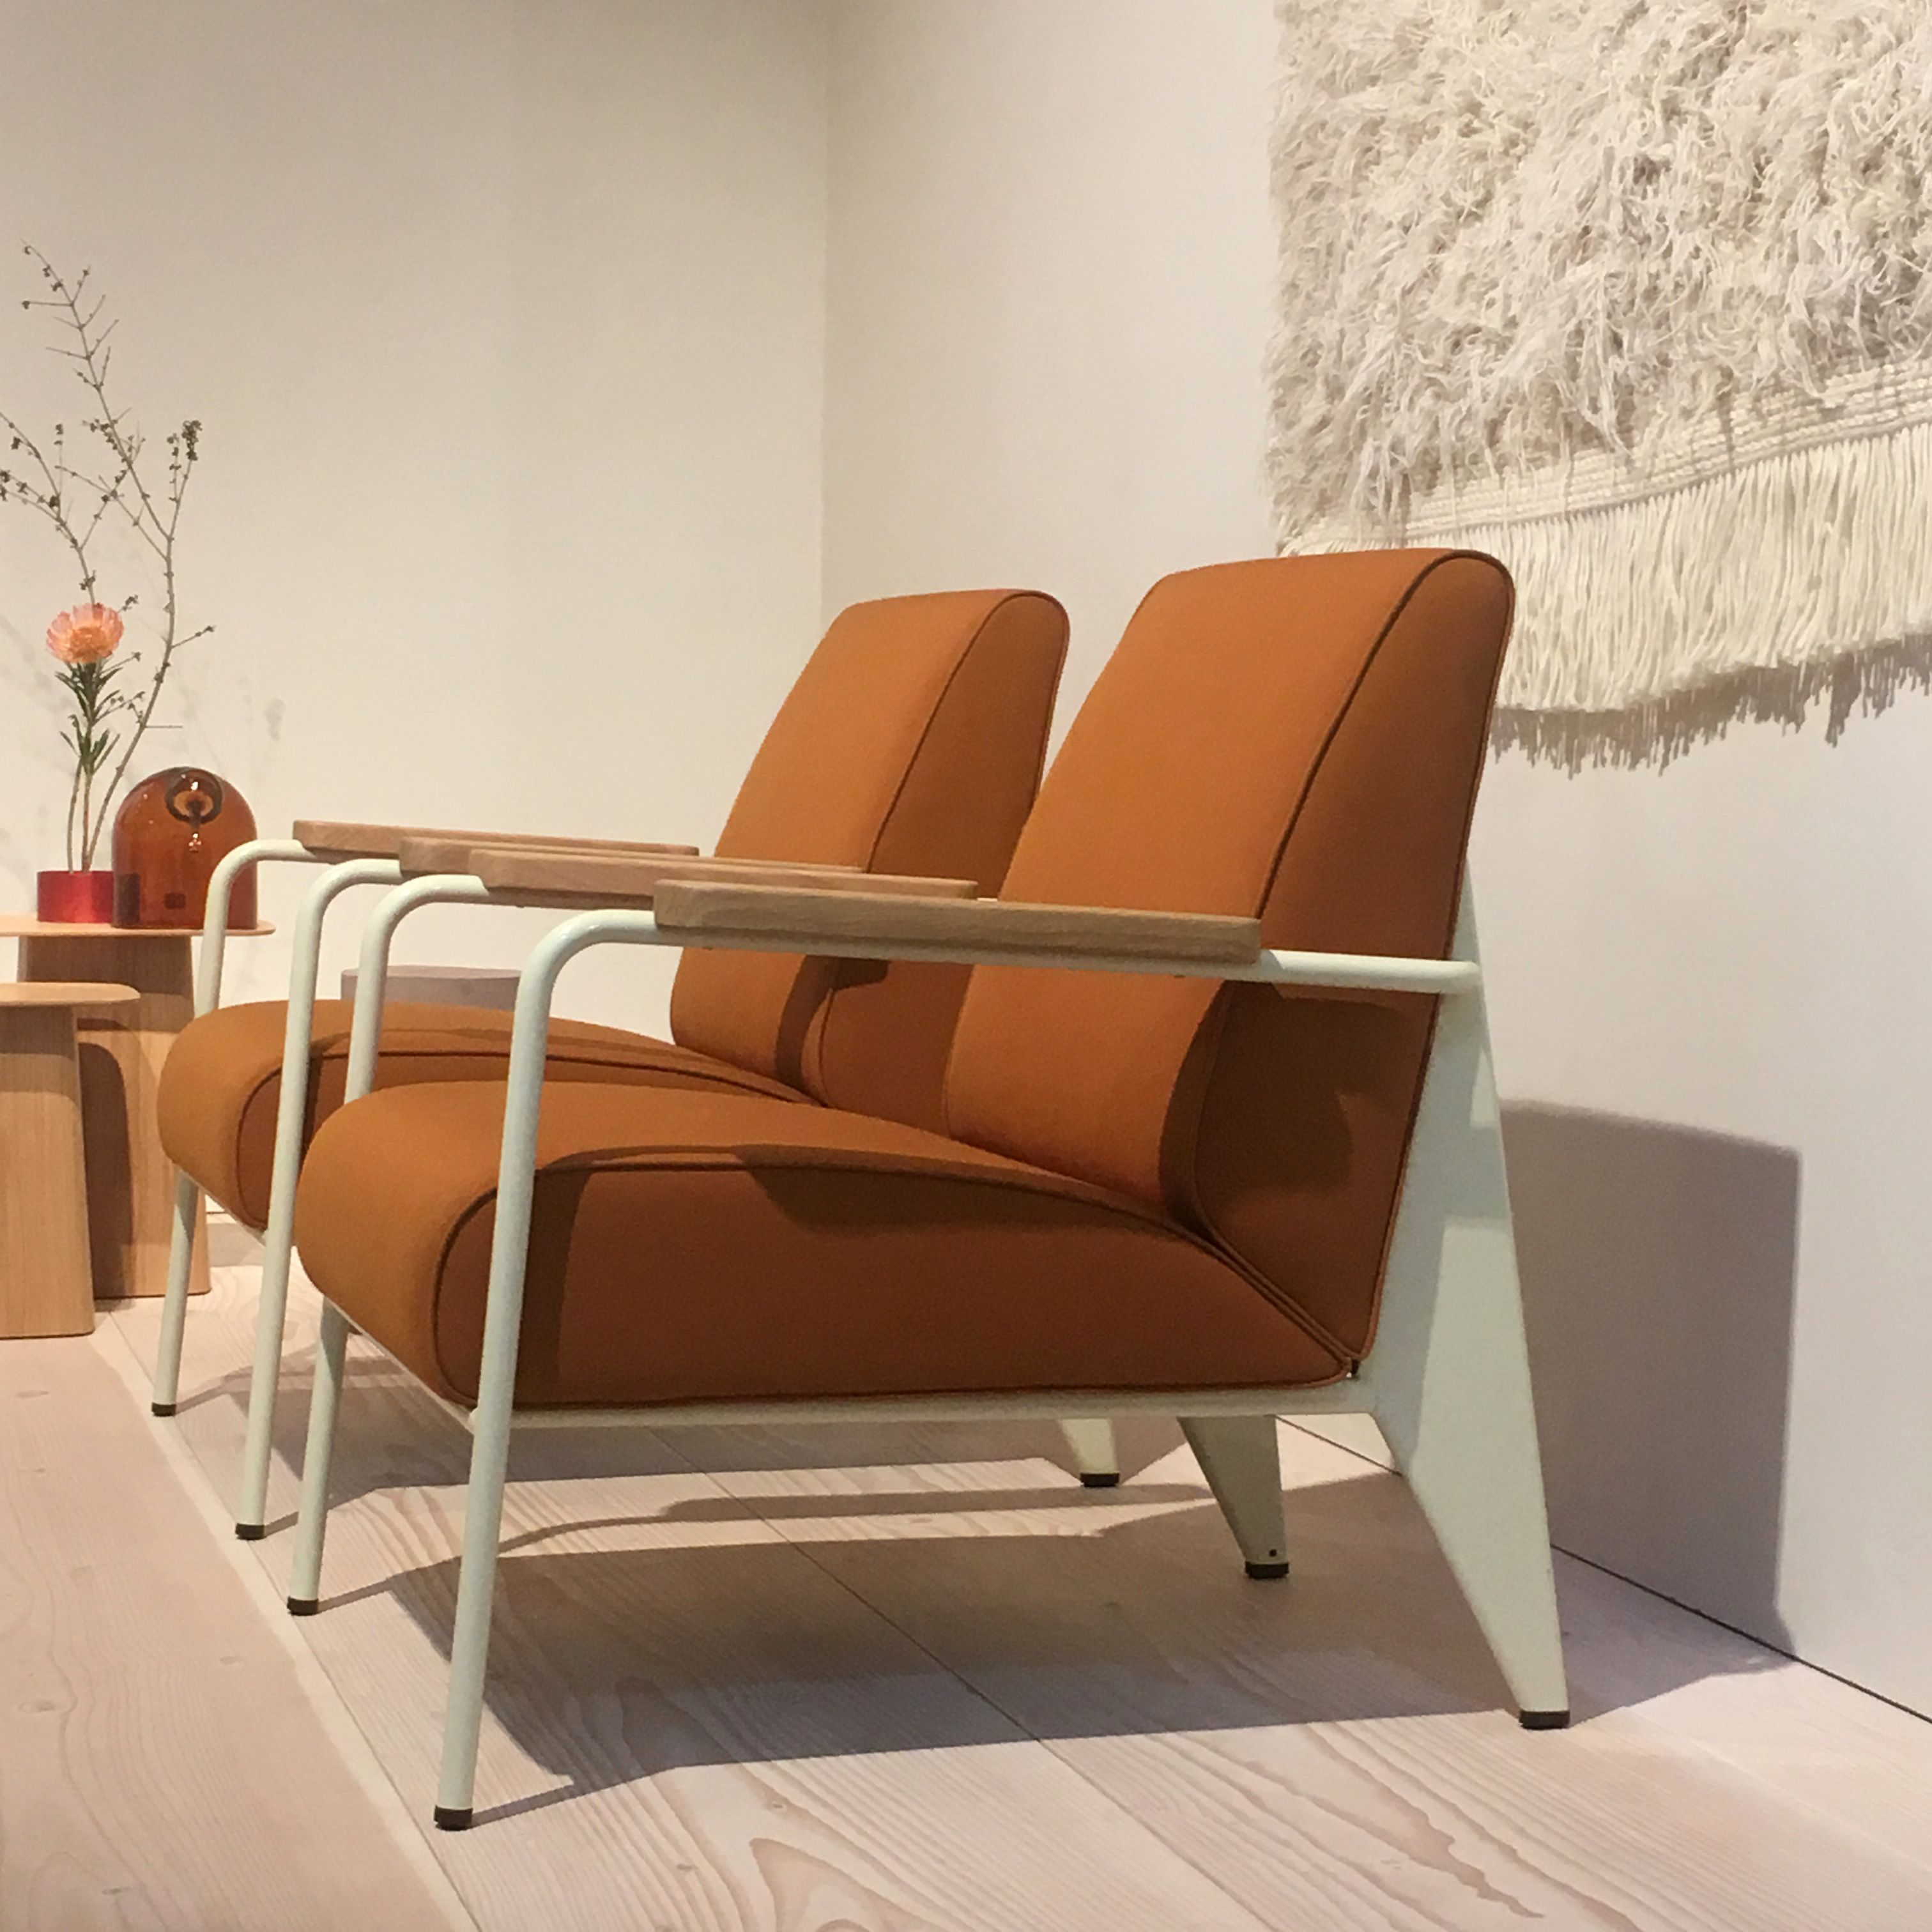 Images Fauteuils Salon Fauteuil De Salon Armchairs By Jean Prouvé Shown By Vitra At The